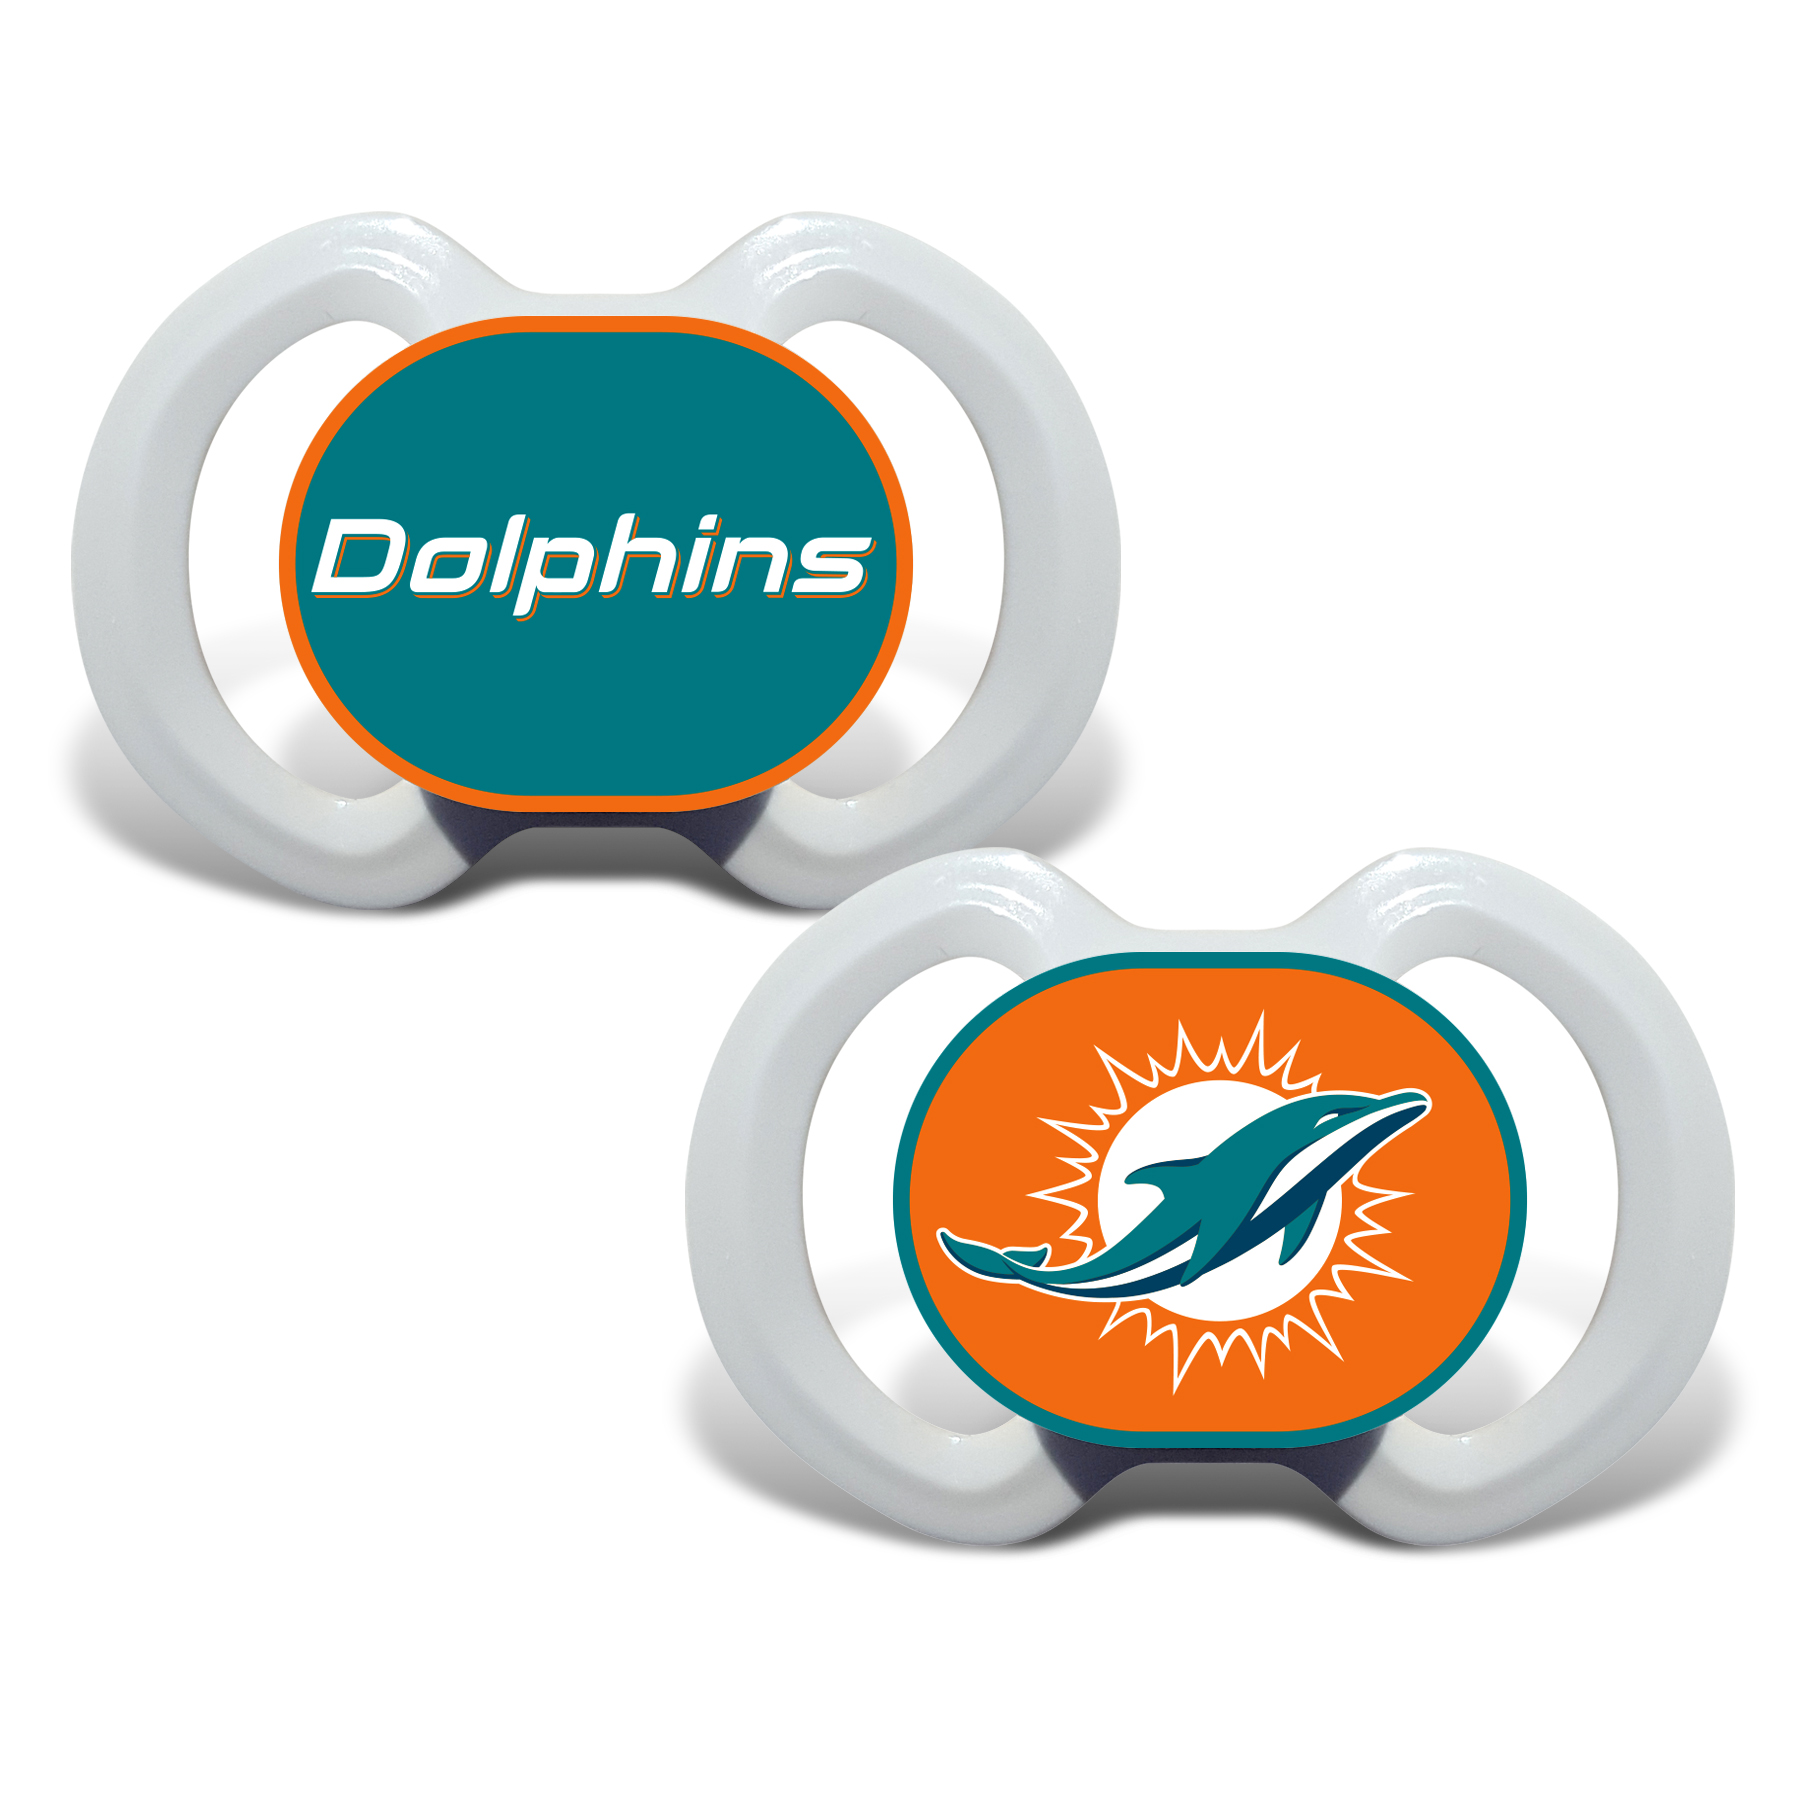 Football Nfl Football Miami Dolphins Baby Fan Gear - 1740702230 - Miami Dolphins Pacifier 2 Pack 1740702230